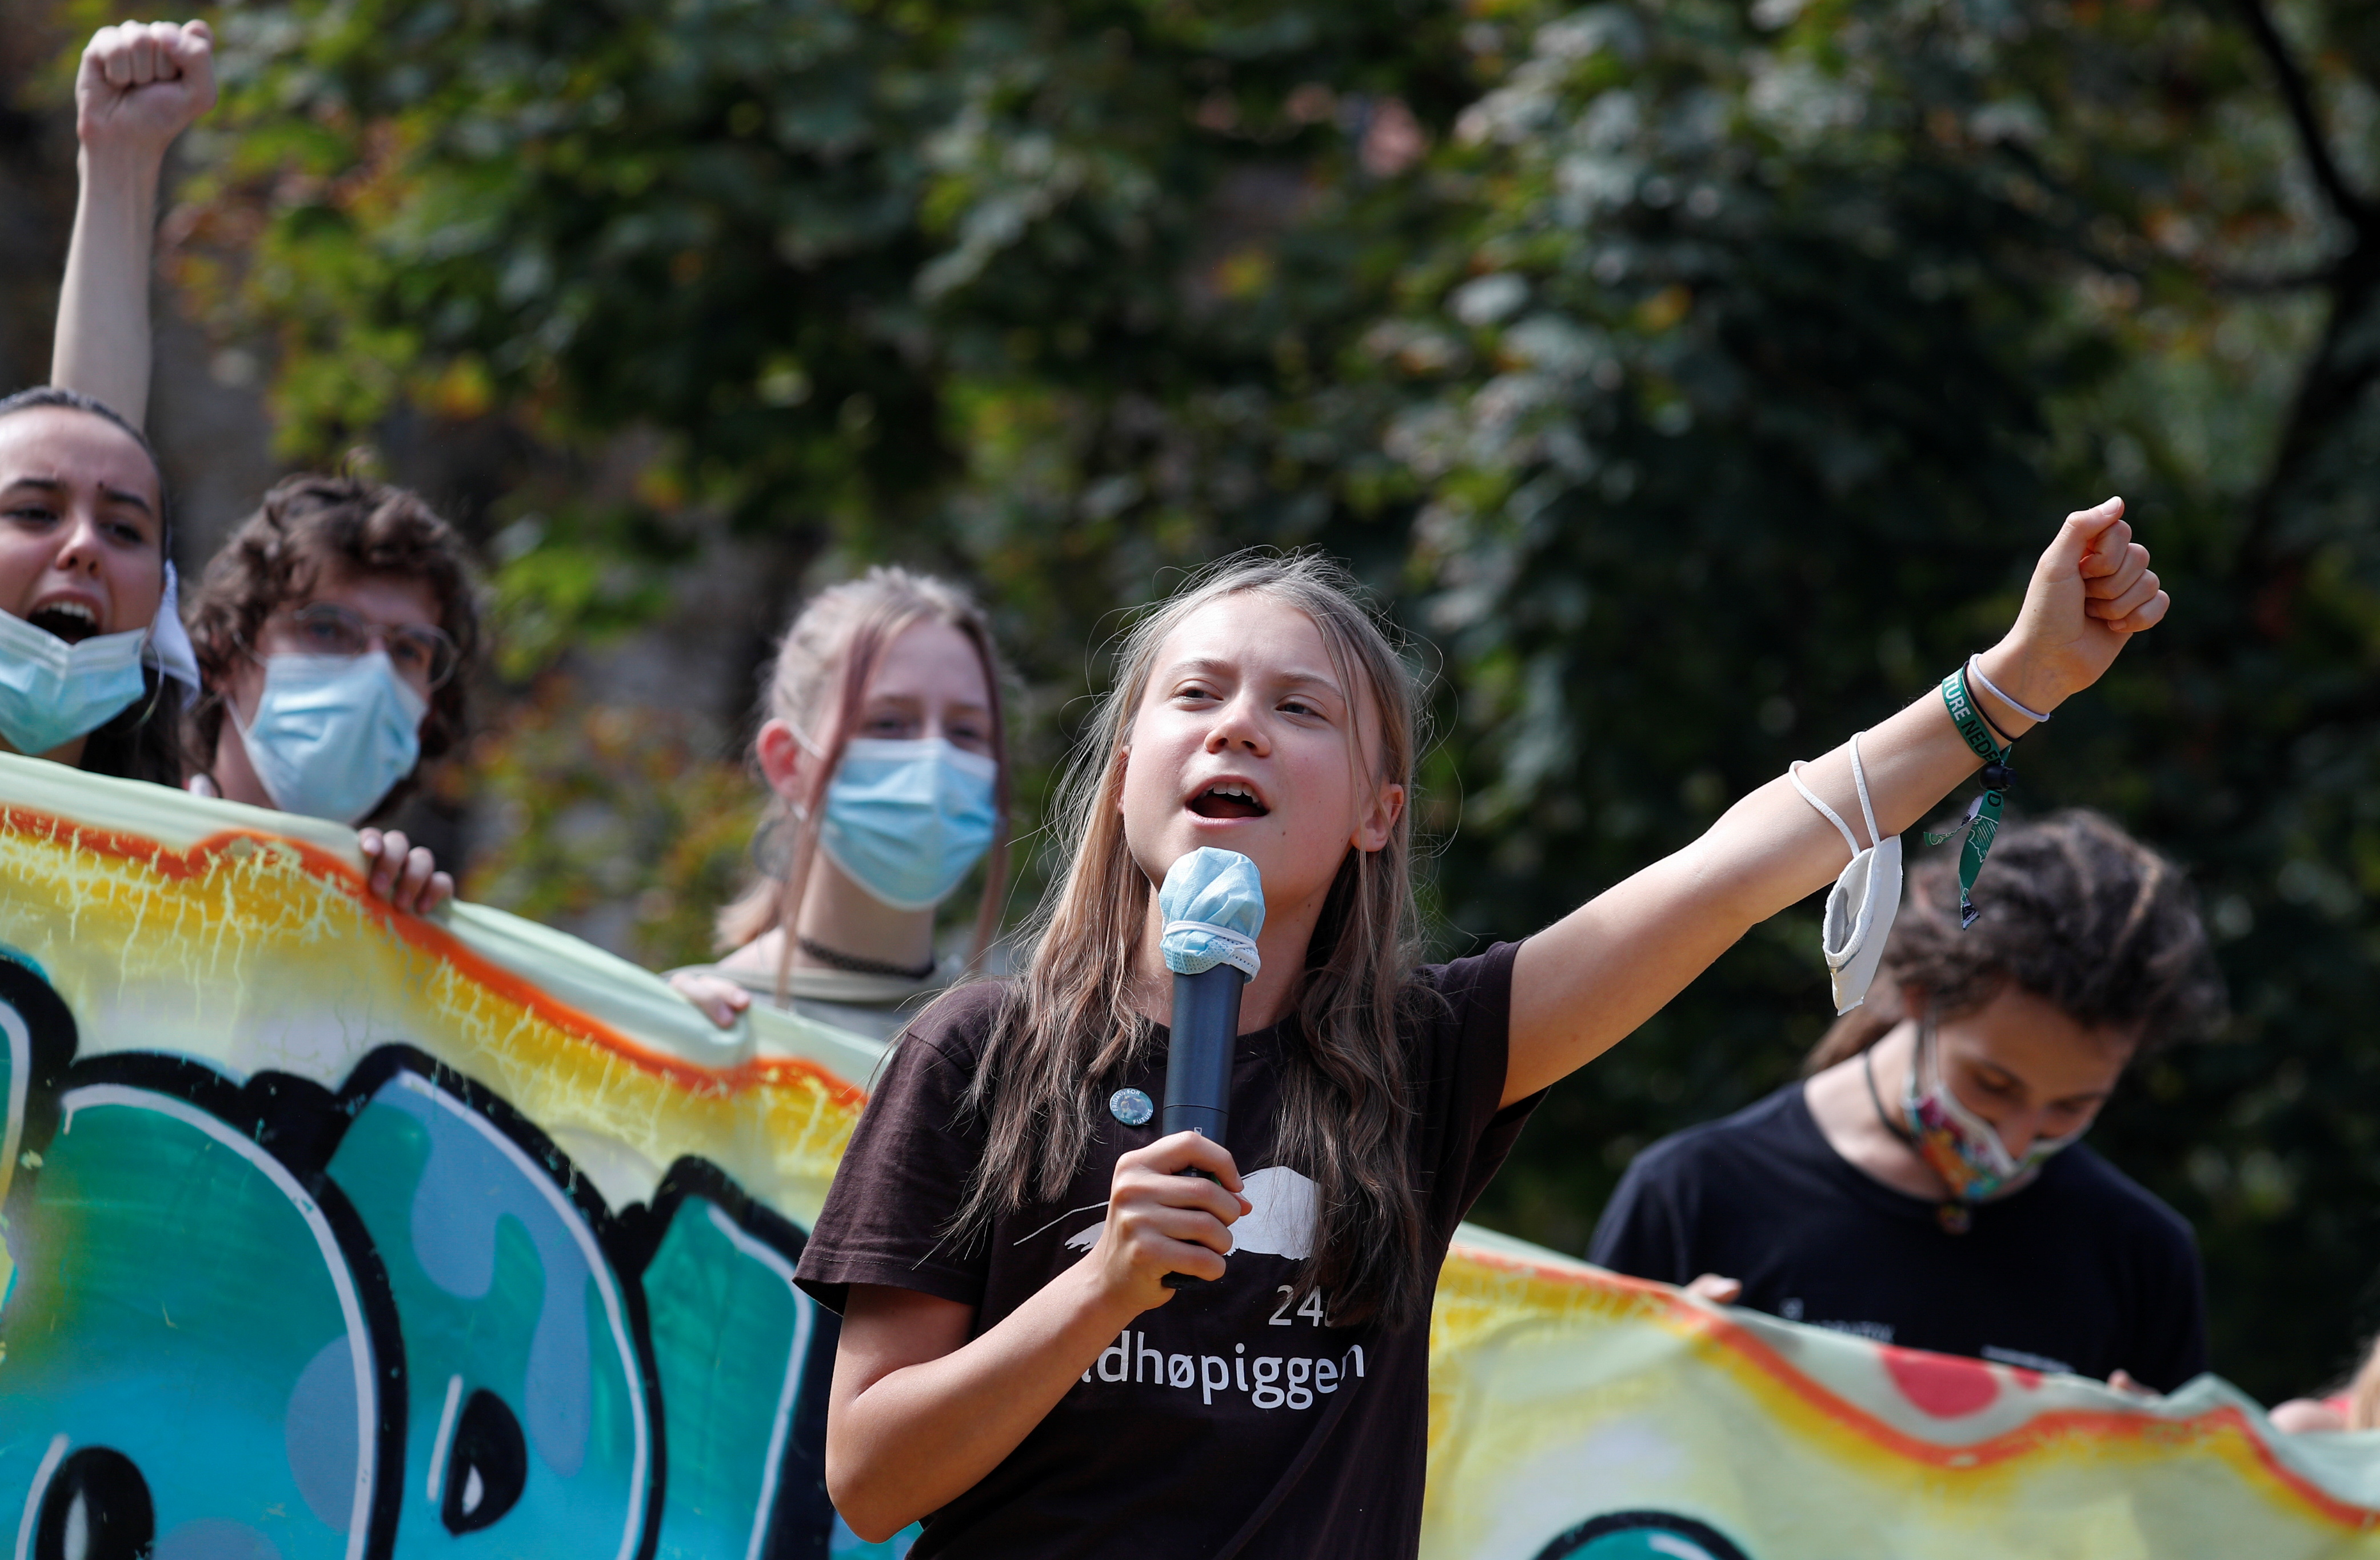 Climate activist Greta Thunberg speaks as she joins students holding a Fridays for Future climate strike while environment ministers meet ahead of Glasgow's COP26 meeting, in Milan, Italy, October 1, 2021.